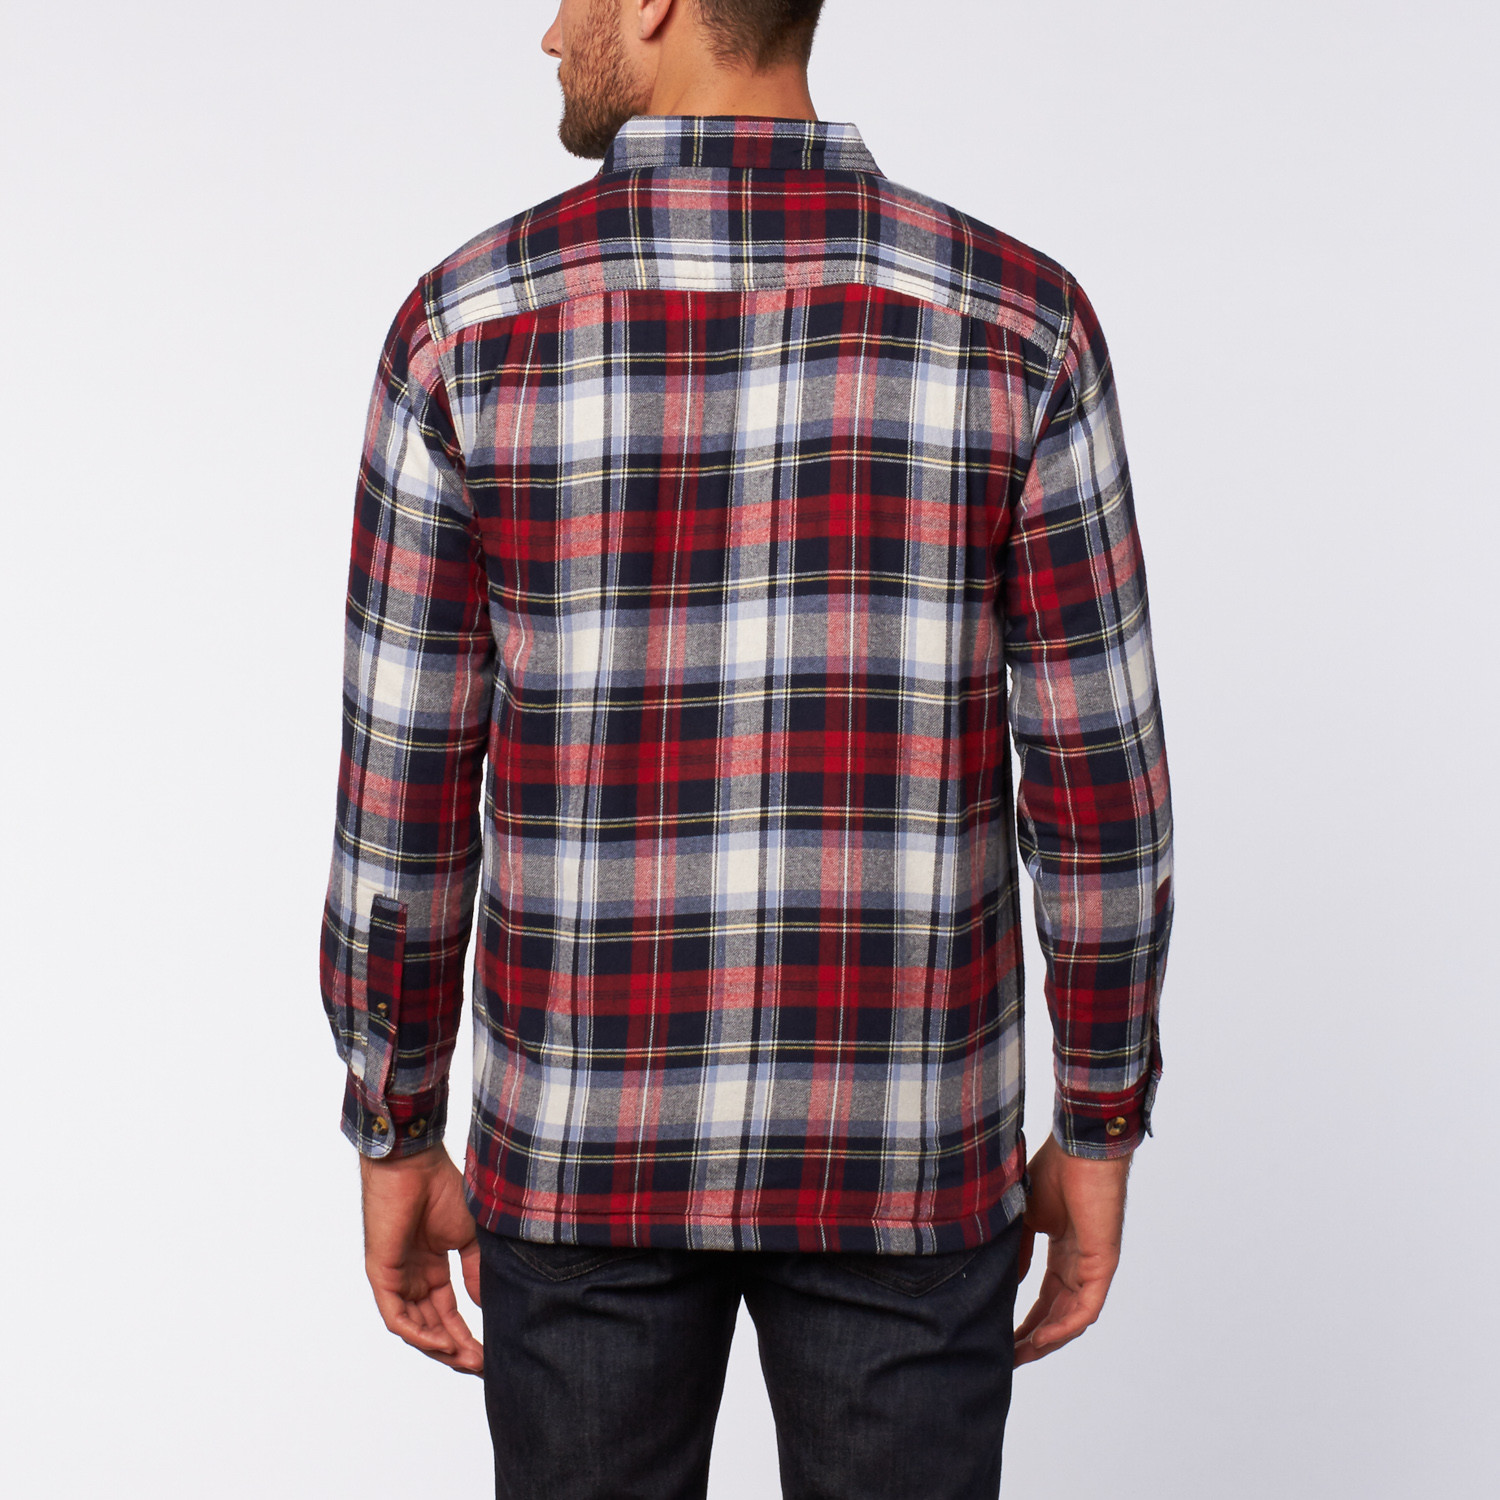 Flannel shirt jacket red navy s stanley touch for Flannel shirt and vest